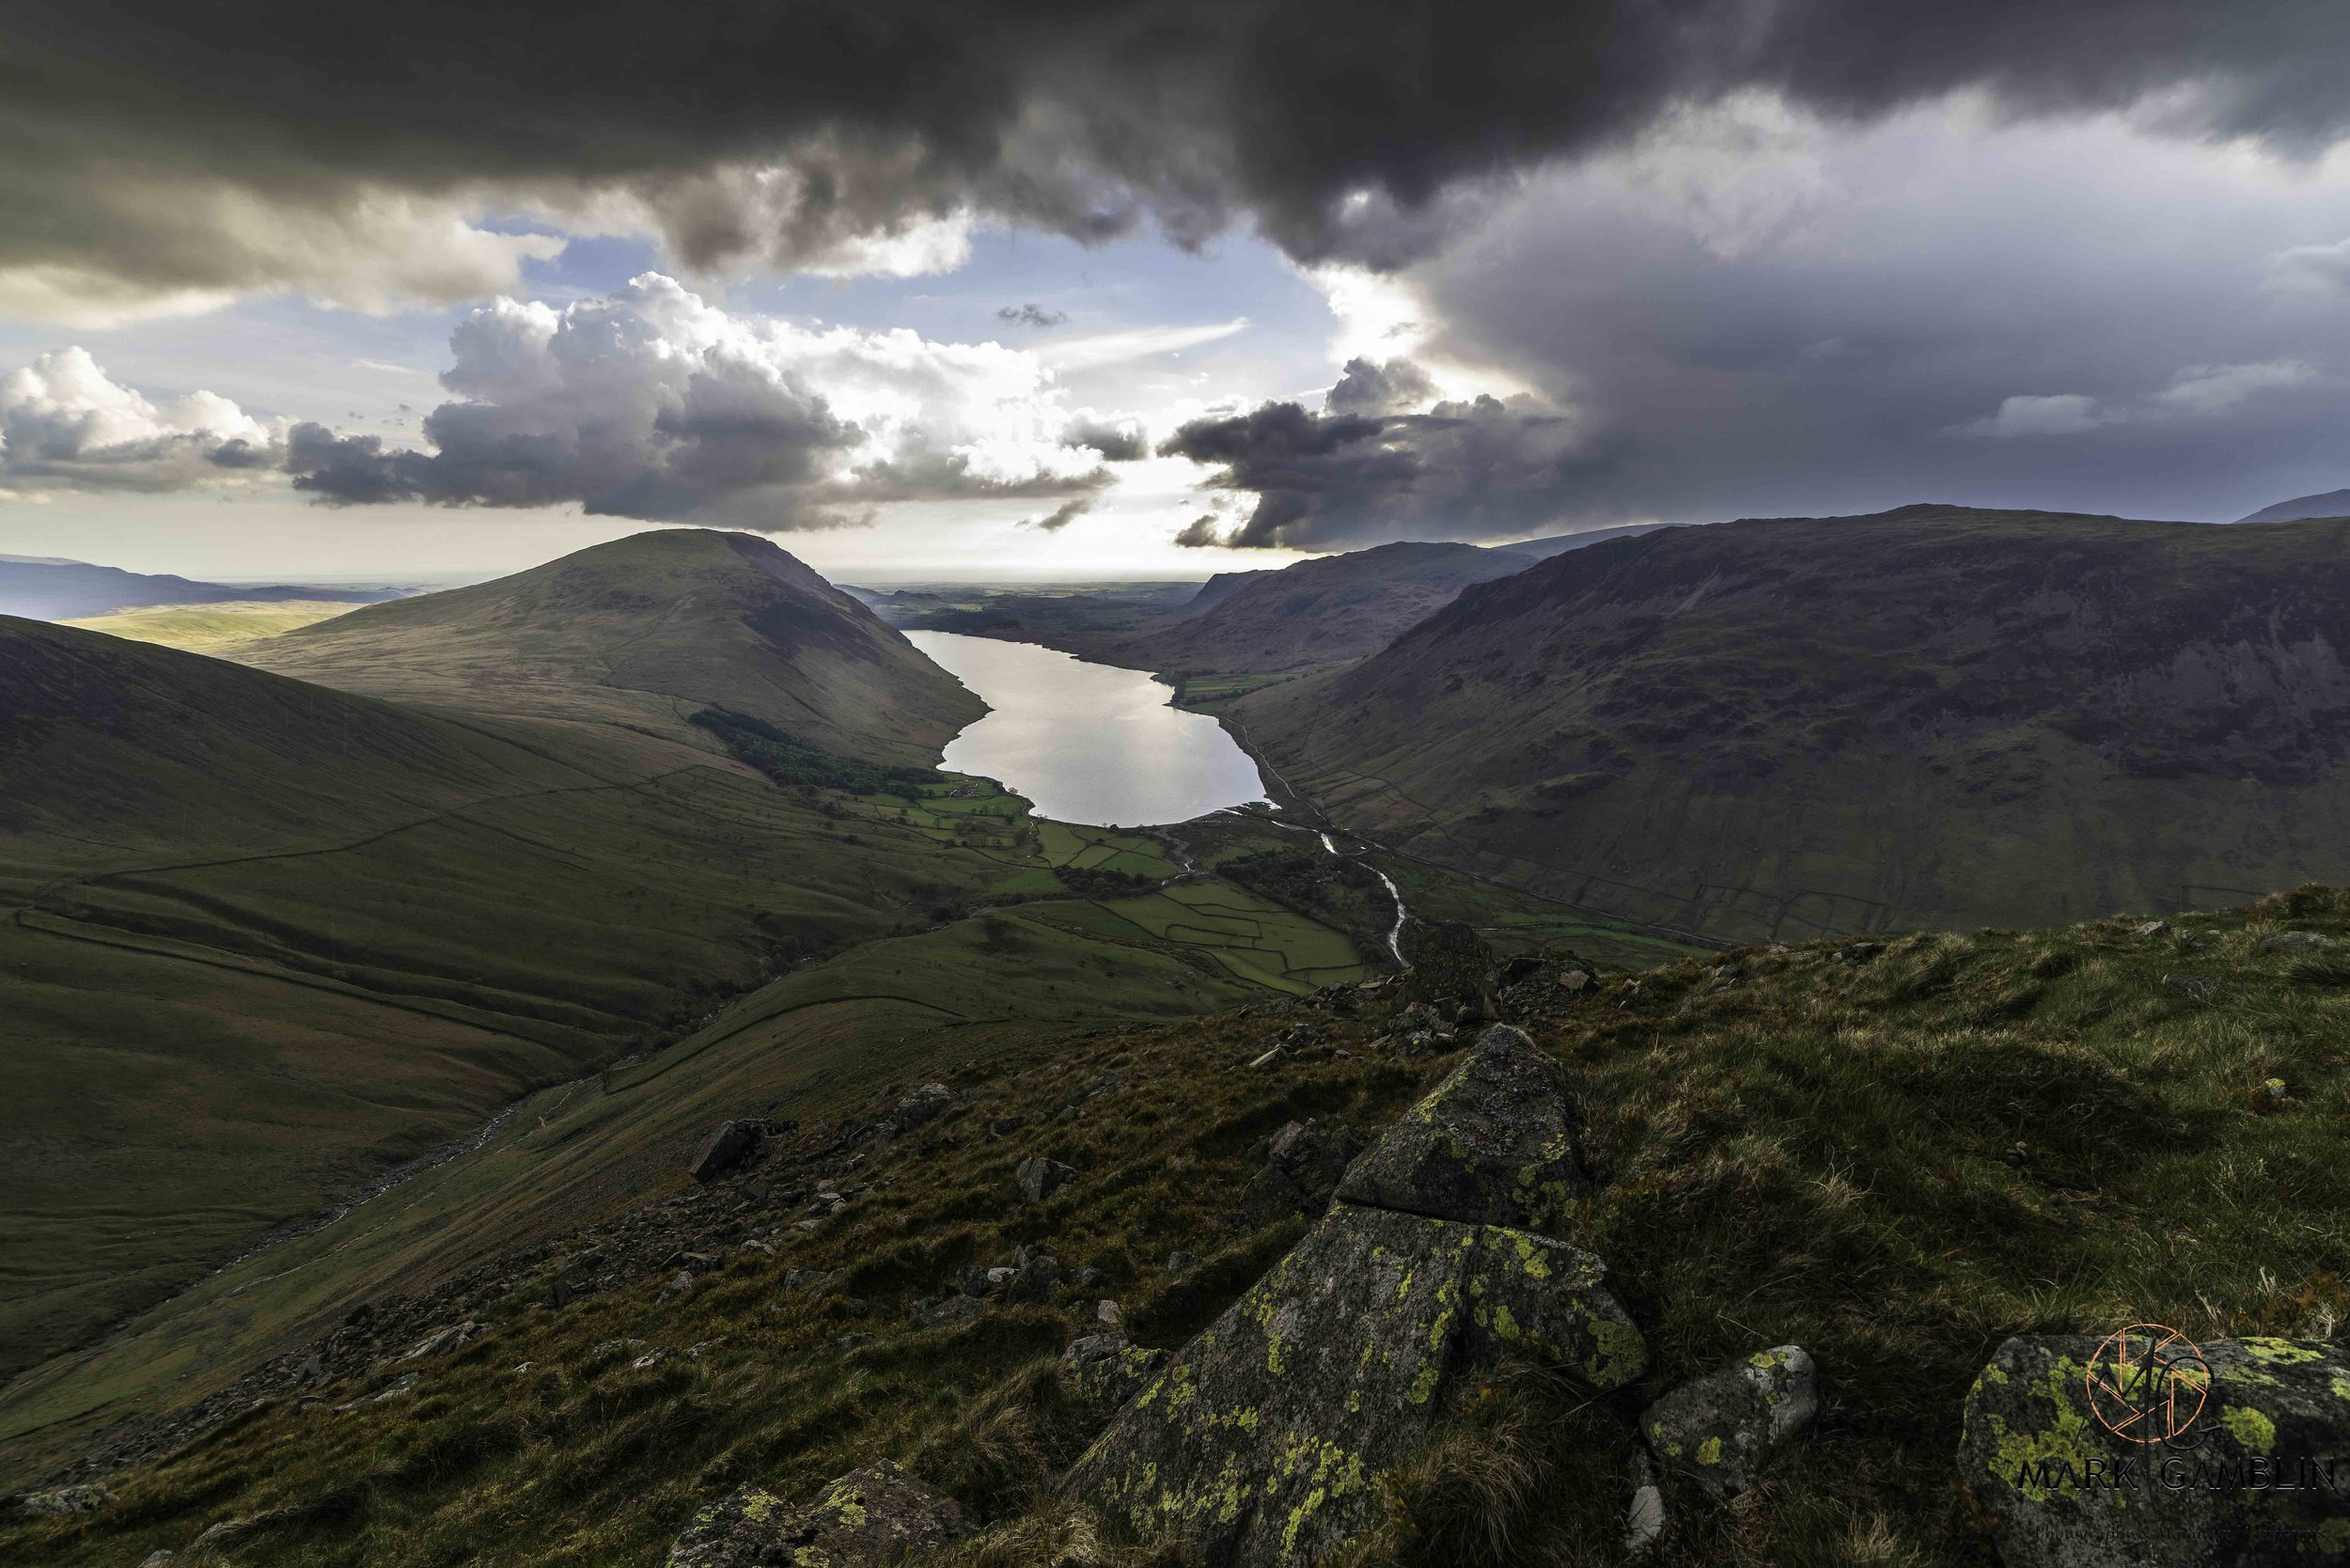 Looking down over Wastwater from Lingmell.